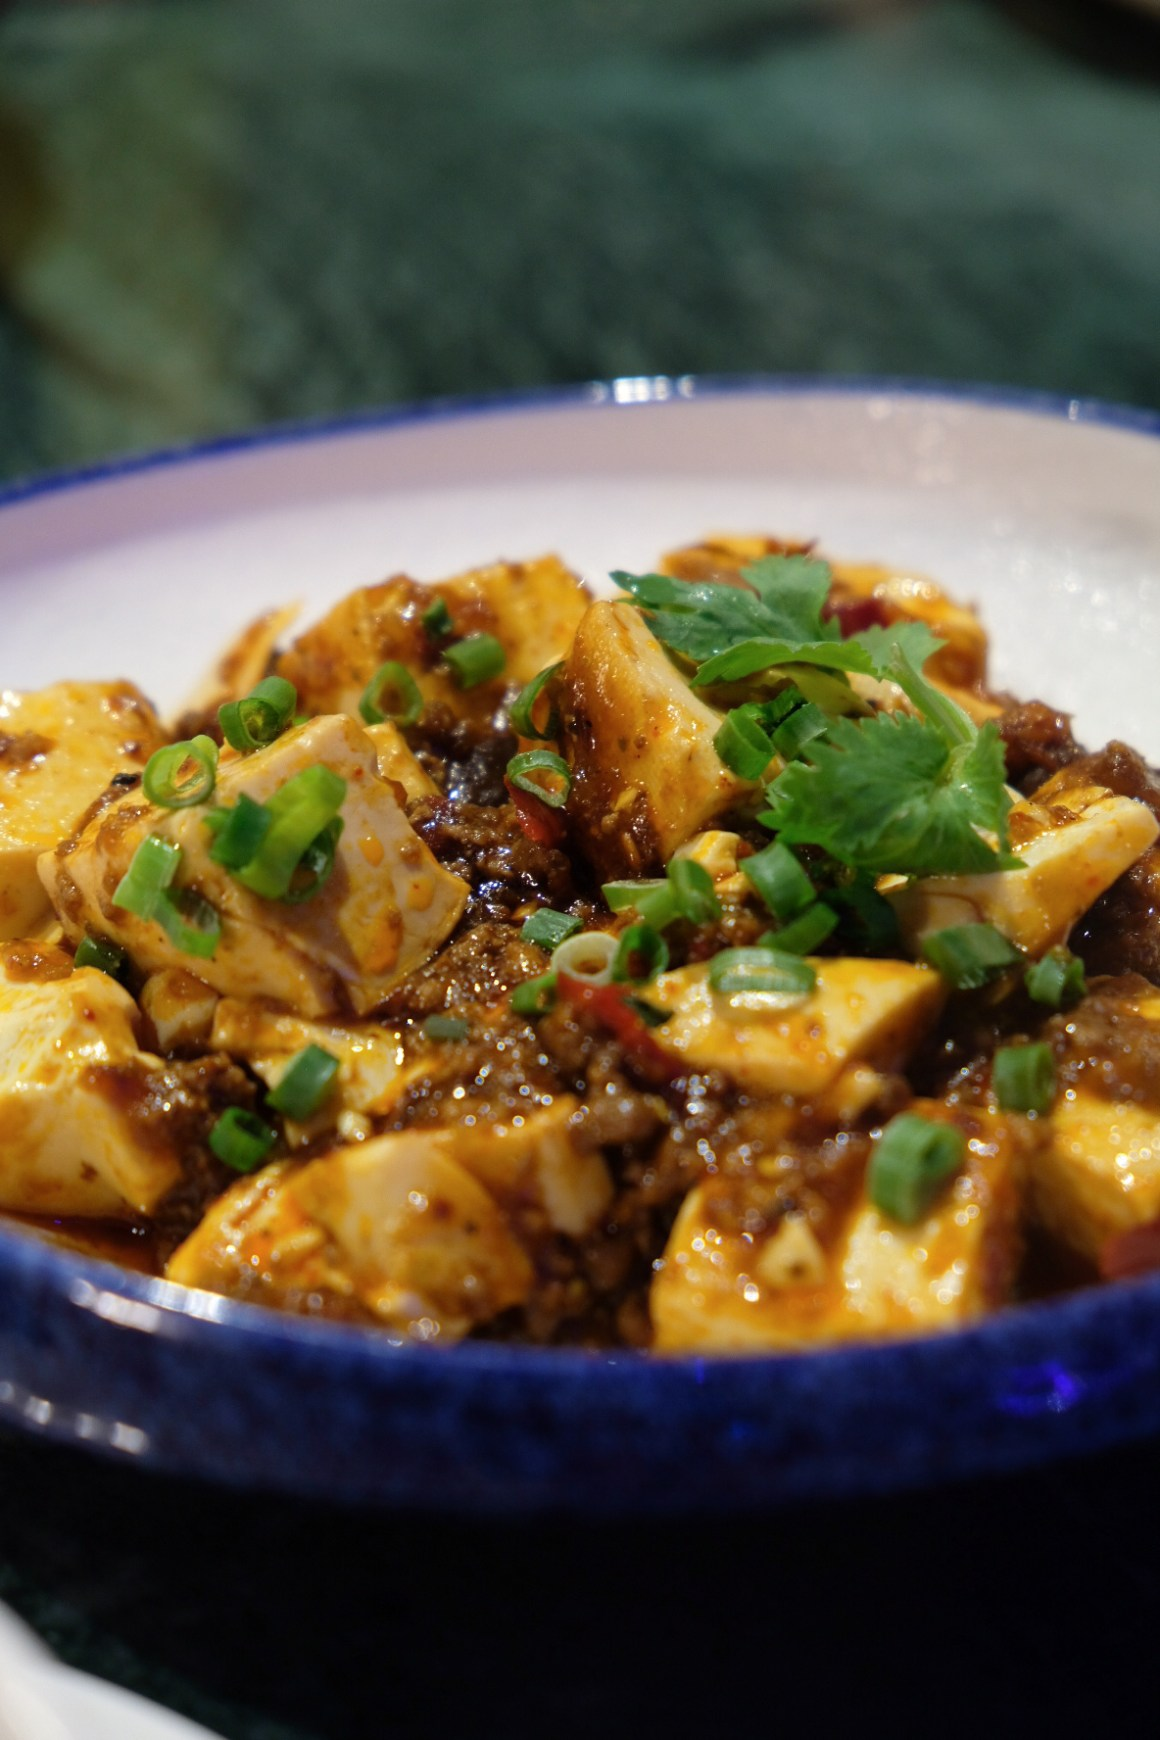 Shang Social 香聚 At Jewel Changi By Shangri-La Group - Mapo Tofu